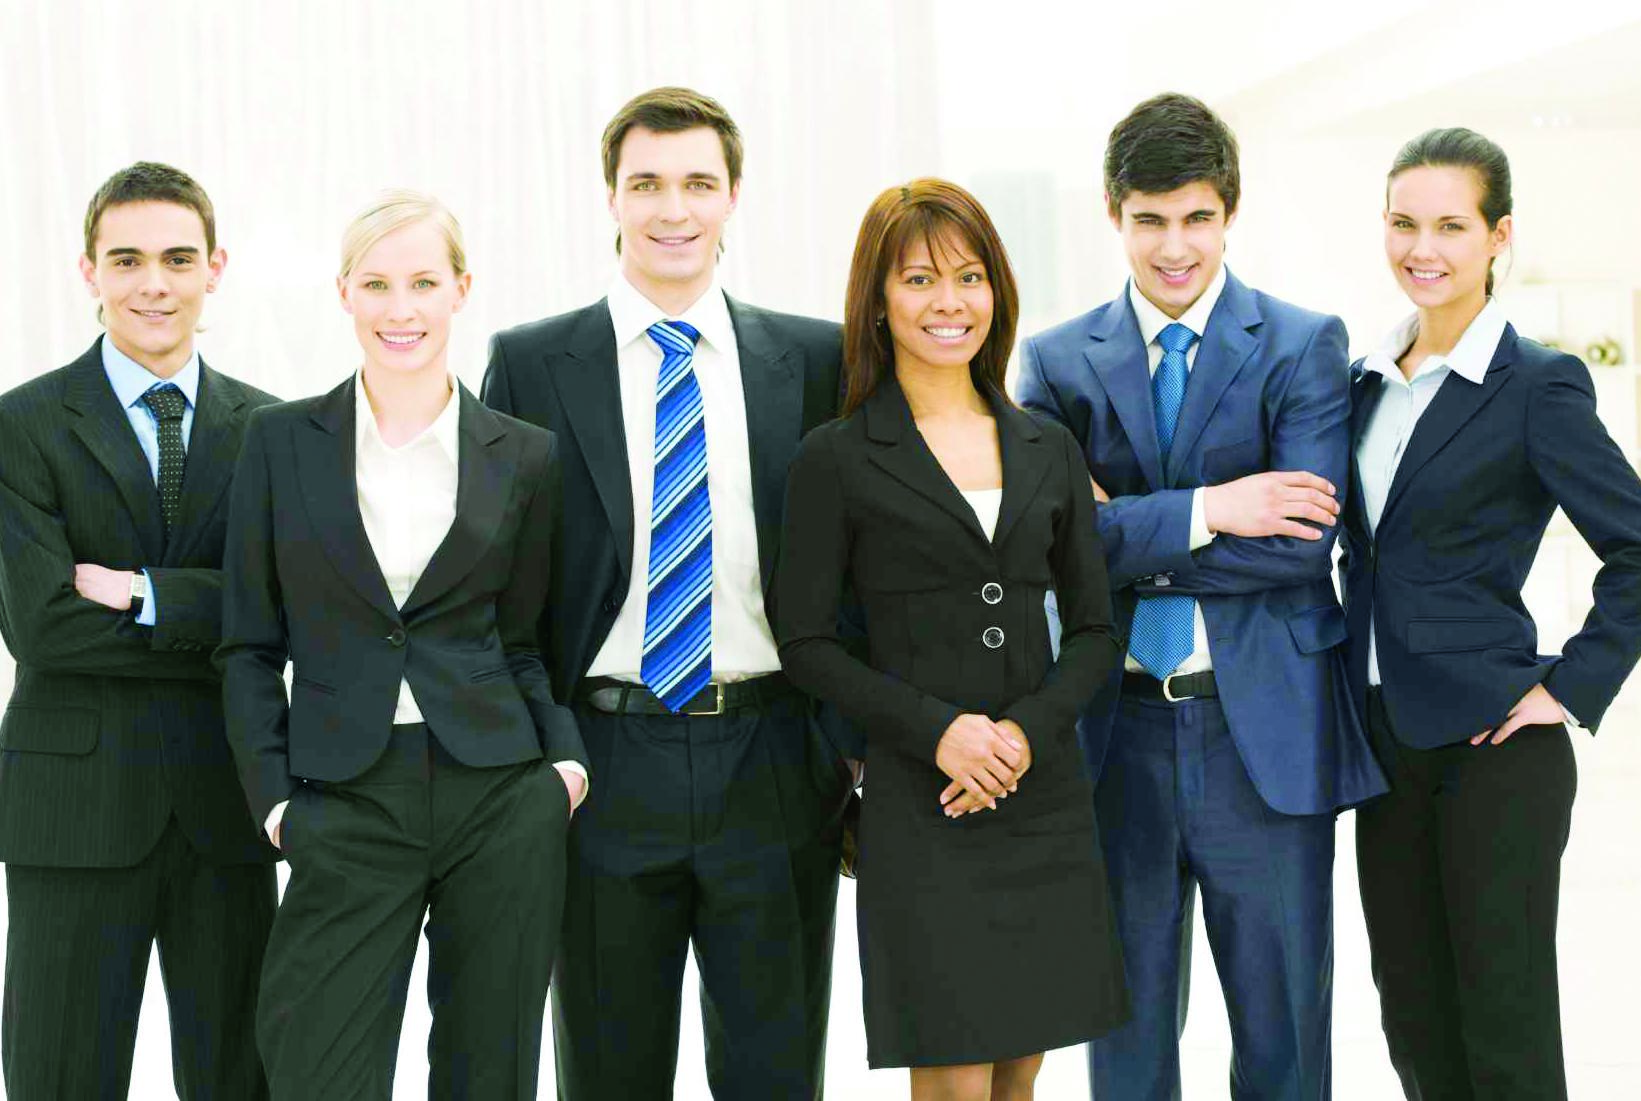 making the most of a career fair com you don t get a second opportunity to make a good first impression and that first impression is highly influenced by appearance